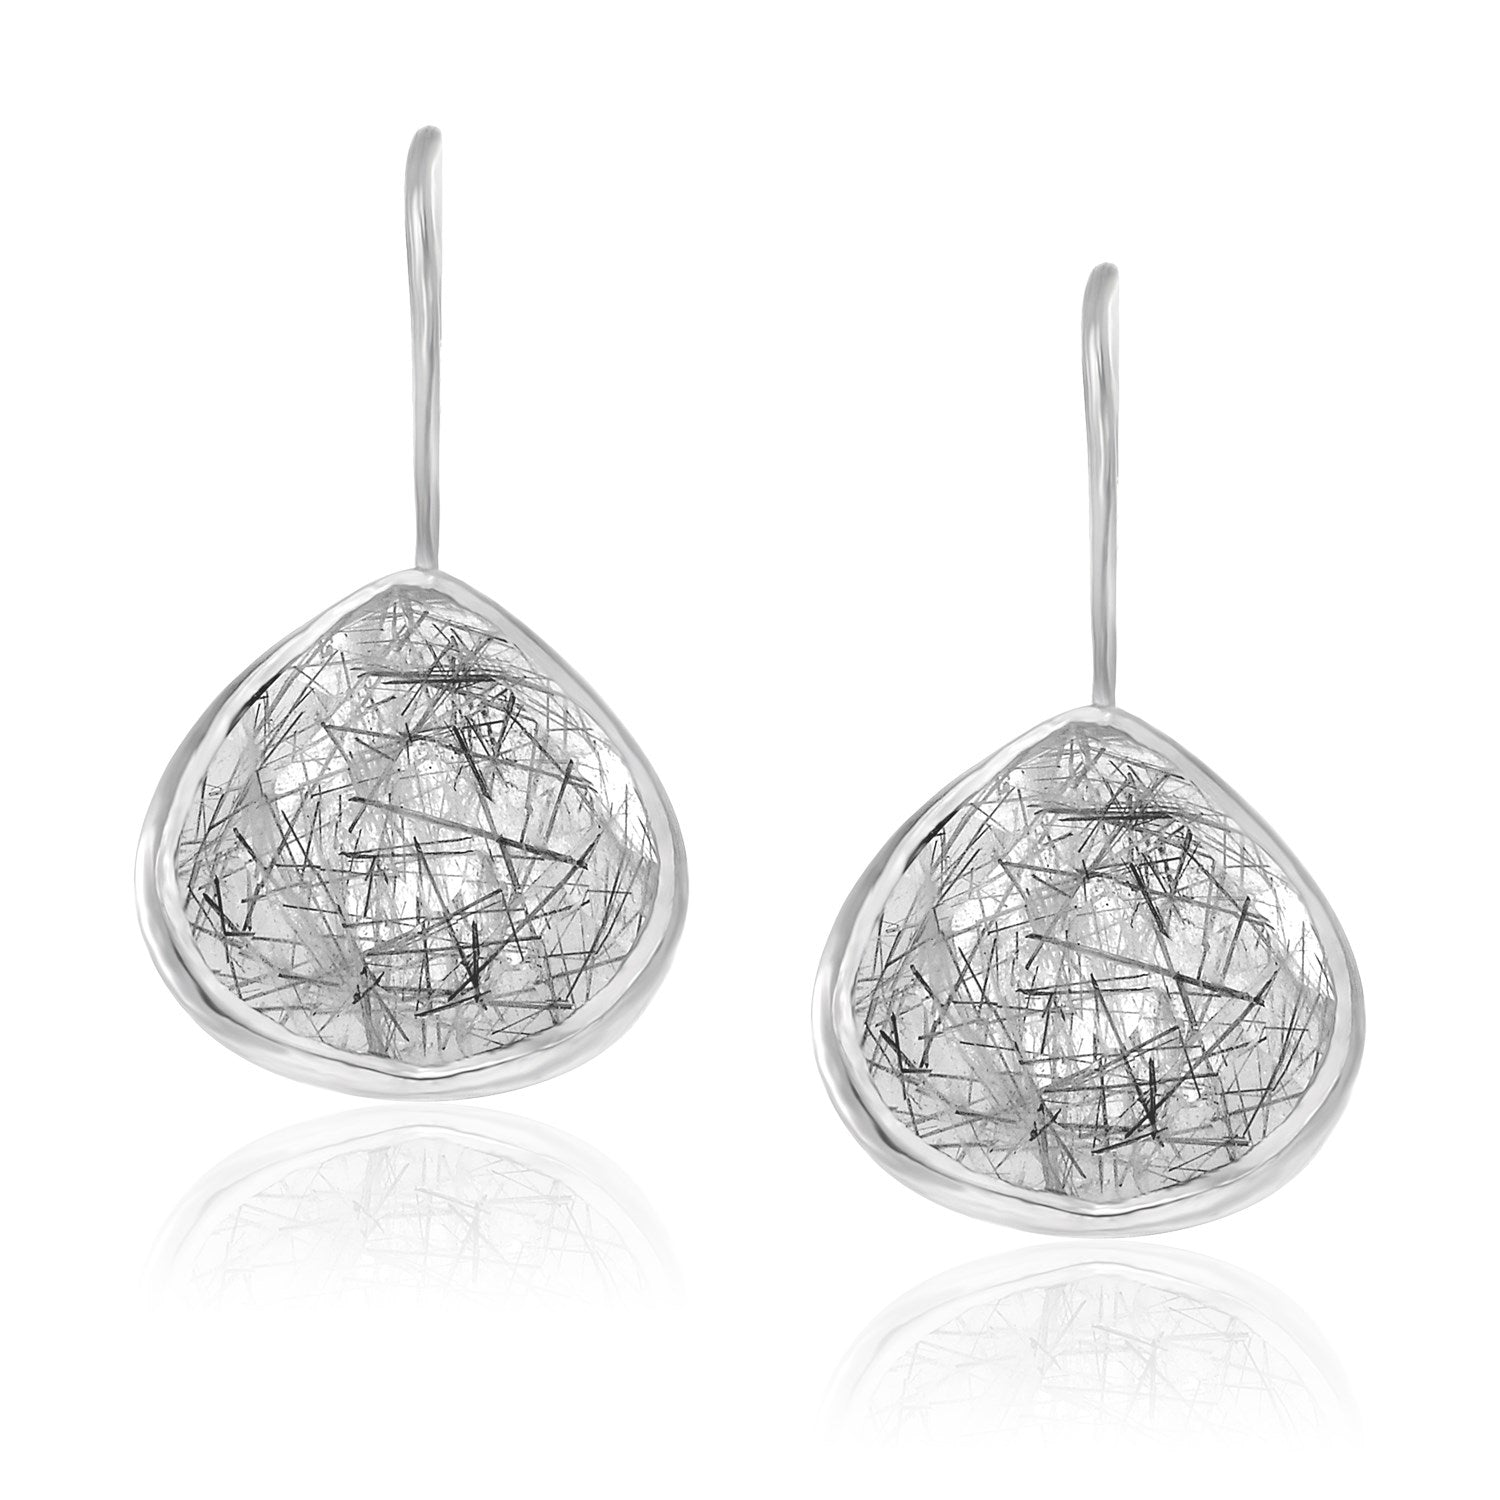 Unique Modern Paris Style Sterling Silver Rutilated Quartz Teardrop Earrings